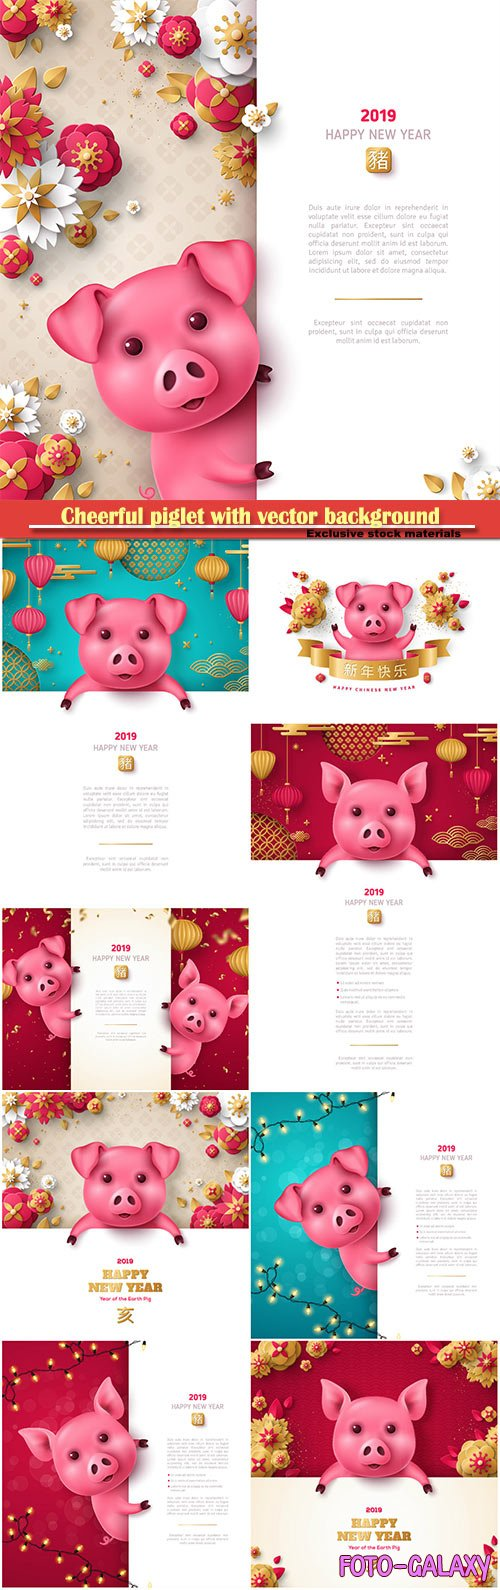 Cheerful piglet with vector background for 2019 Happy Chinese New Year